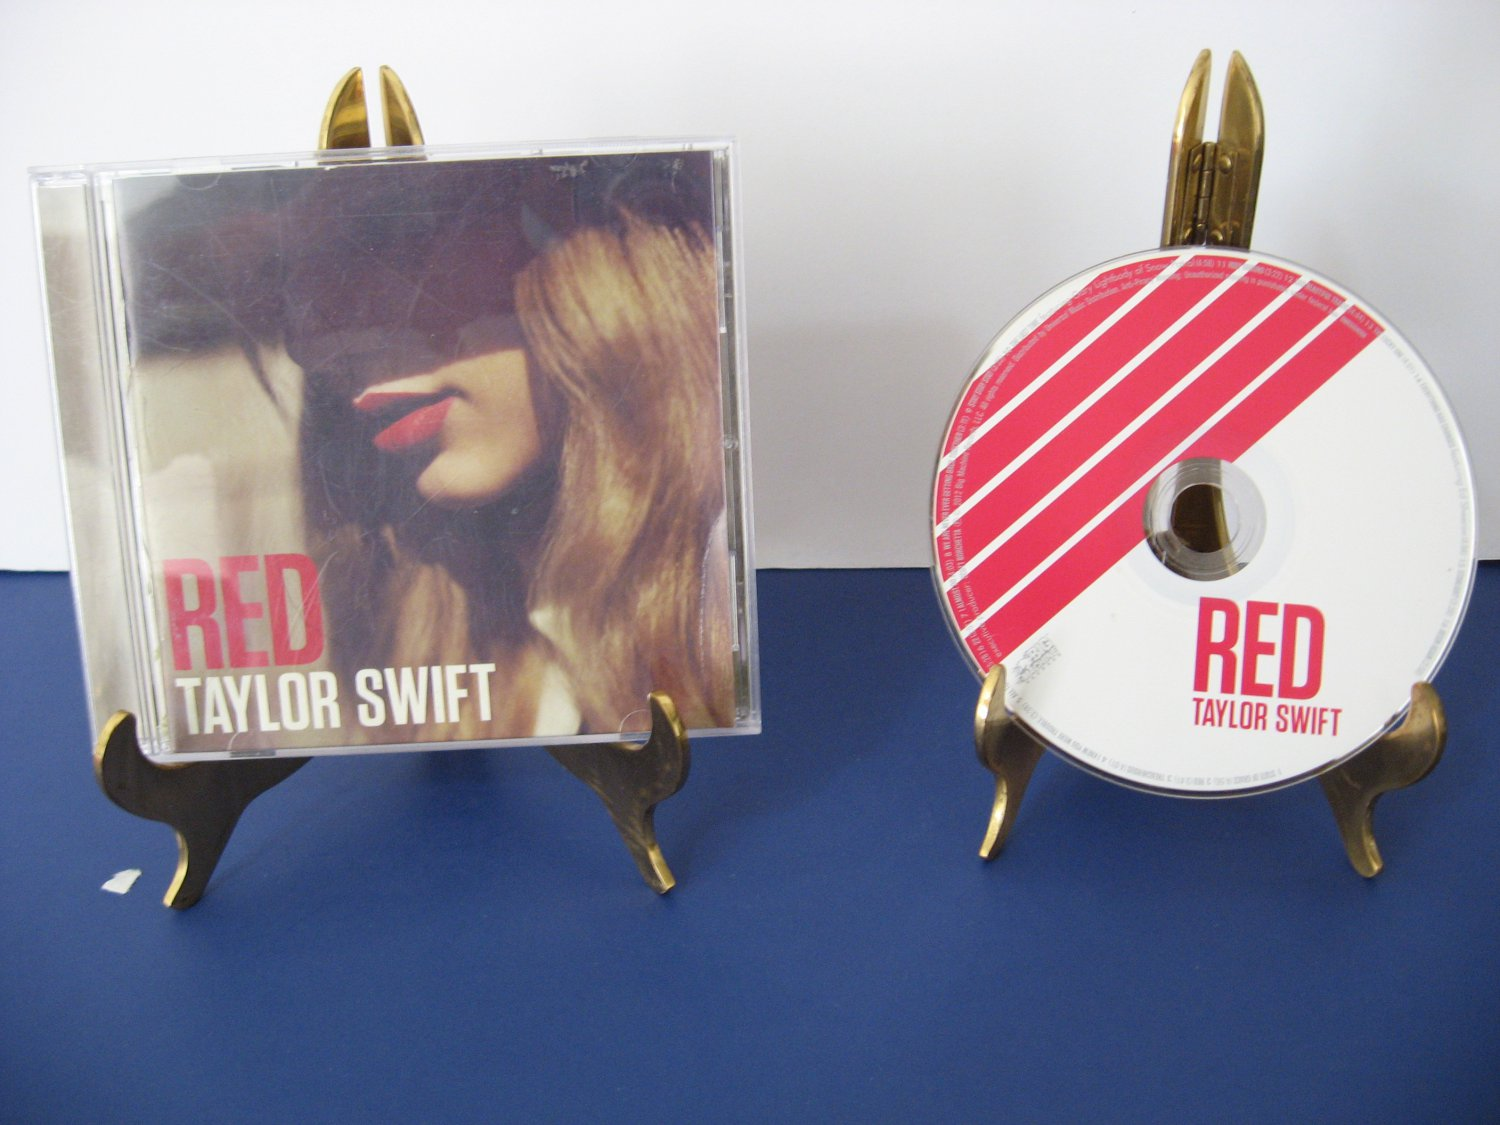 Taylor Swift - Red - Compact Disc